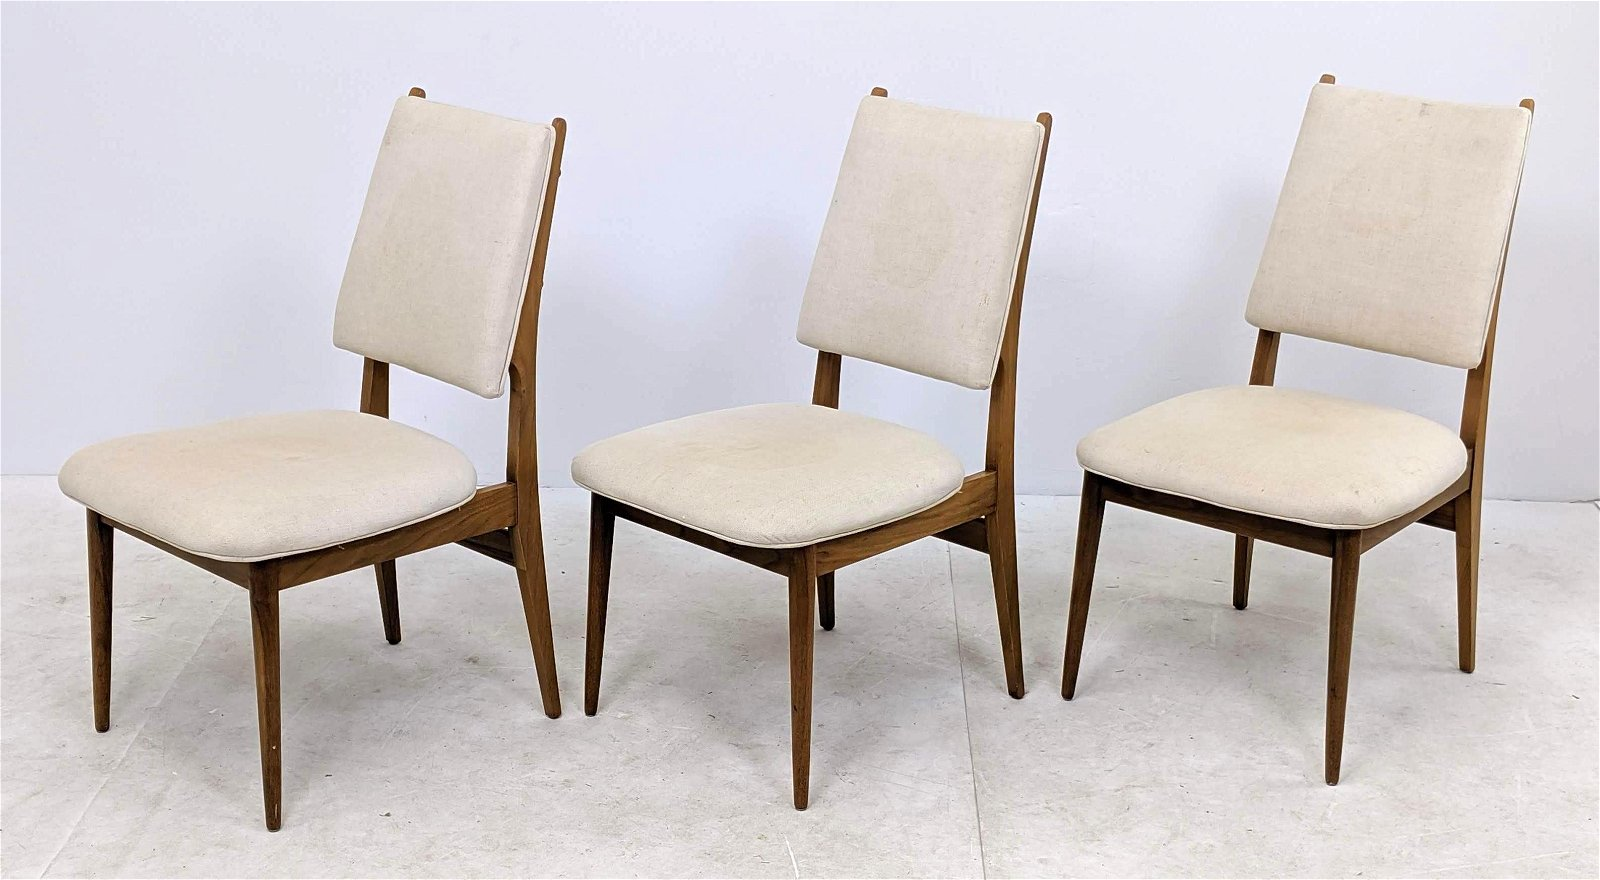 3pc Danish Modern Teak Upholstered Dining Chairs. Off w